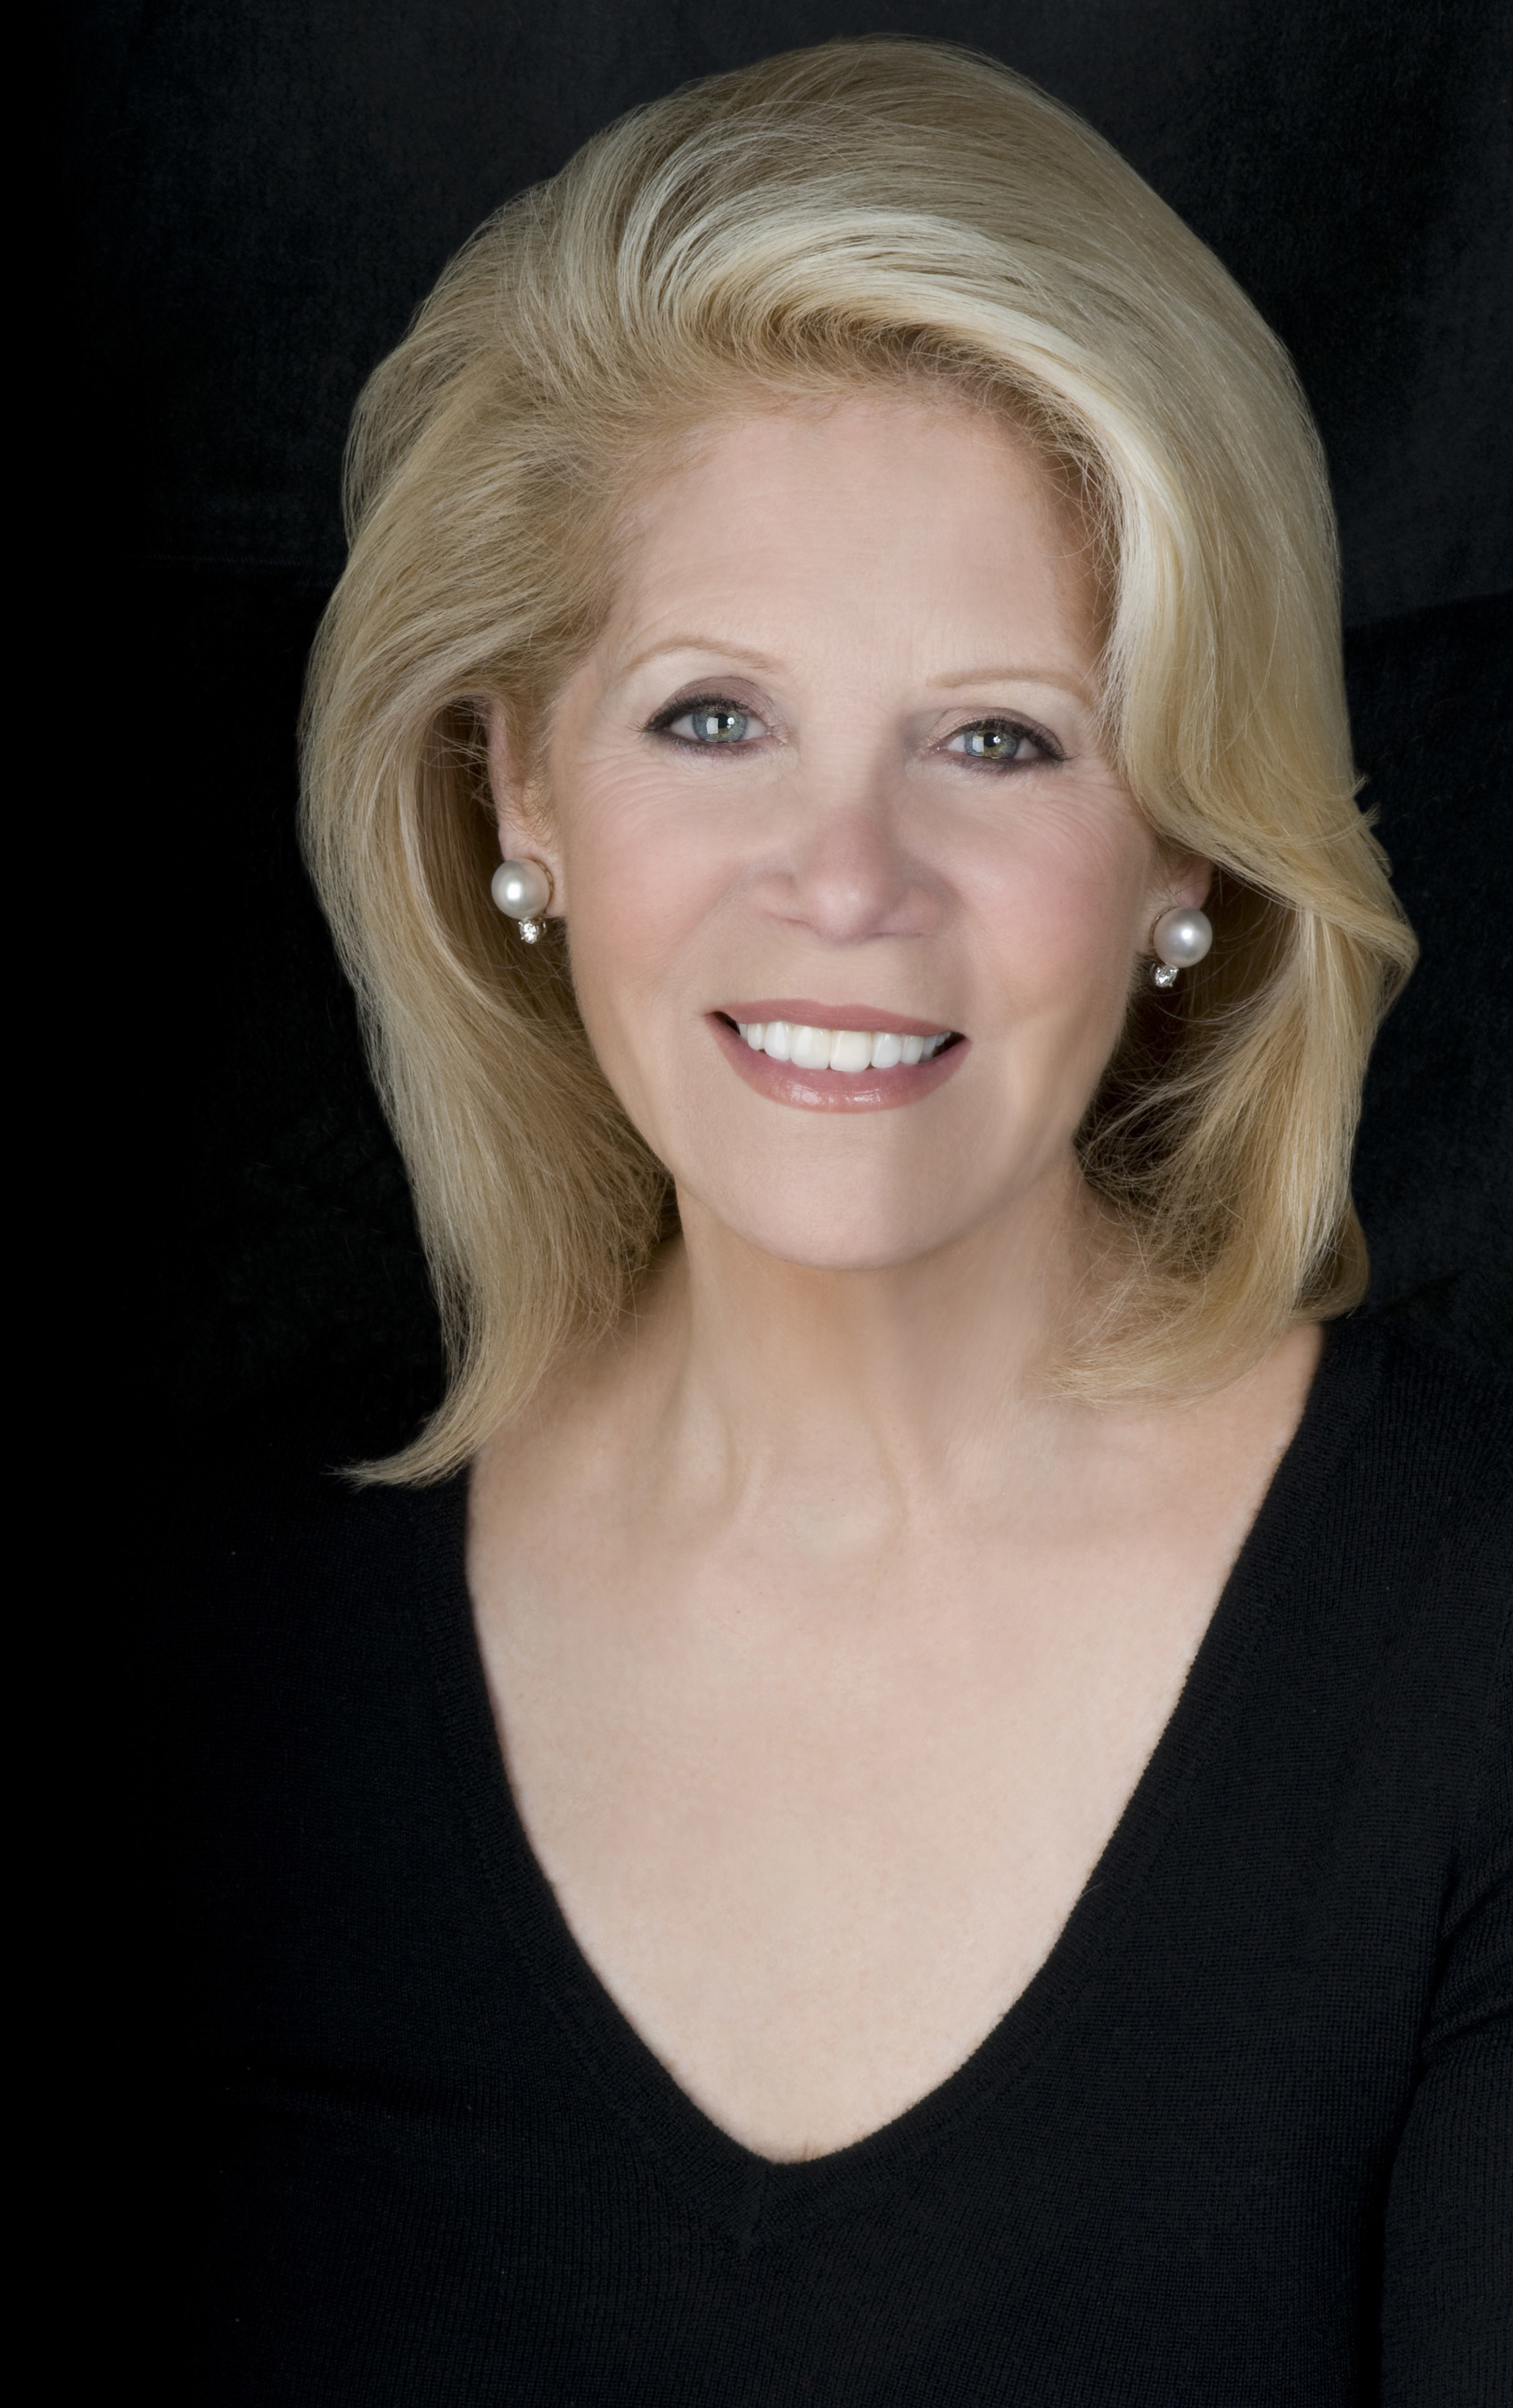 The Hasty Pudding Institute of 1770 to Honor Acclaimed Broadway Producer Daryl Roth with the Order of the Golden Sphinx